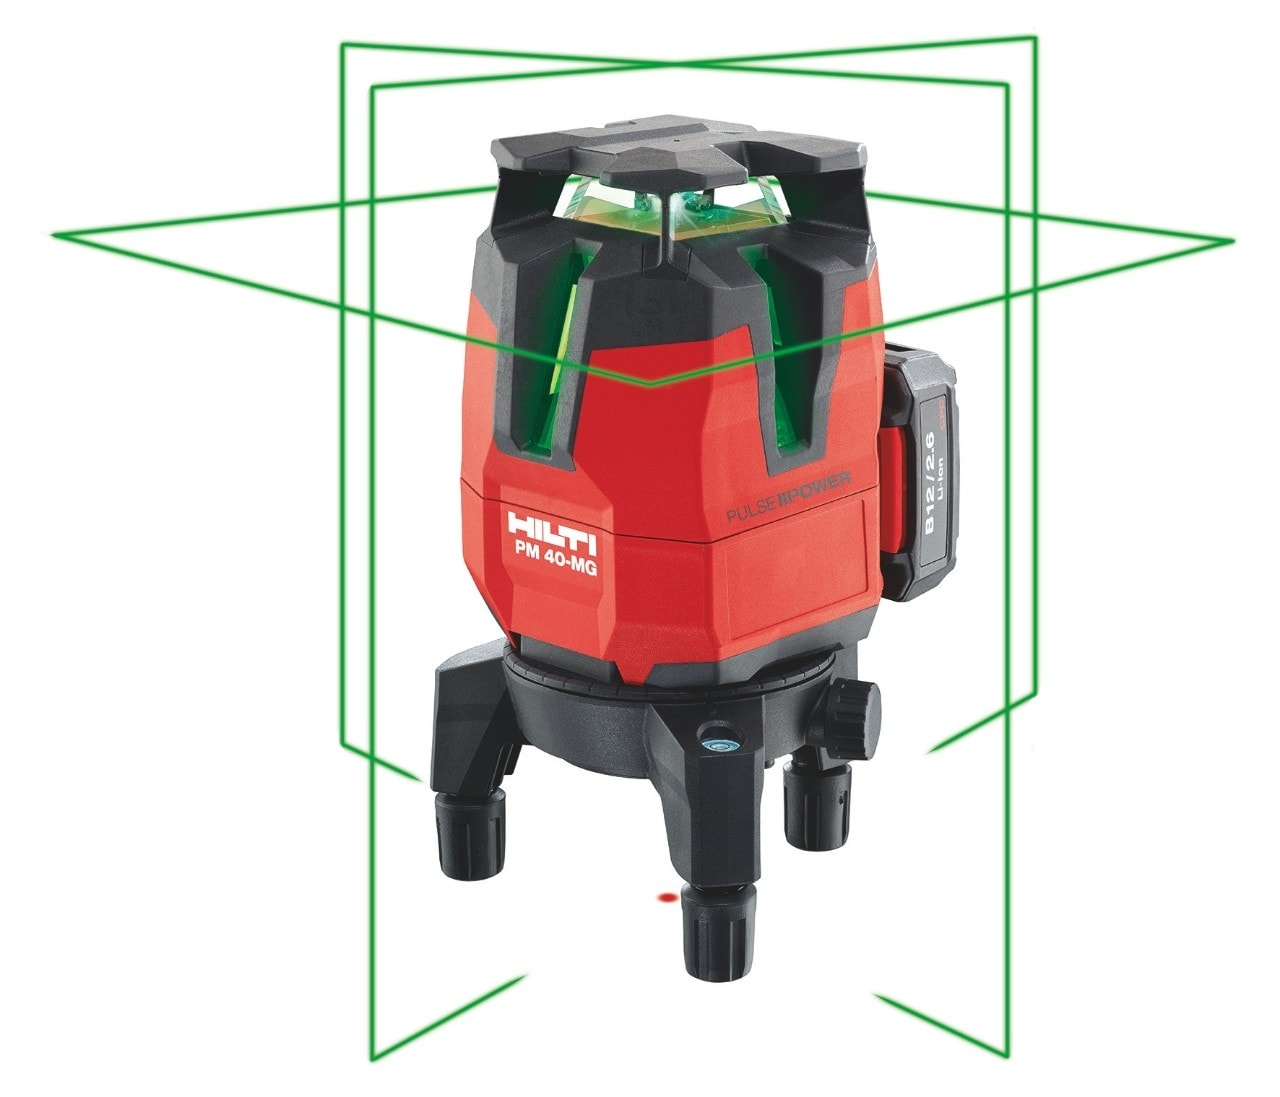 PM 40-MG Multiline Laser - Hilti Hong Kong